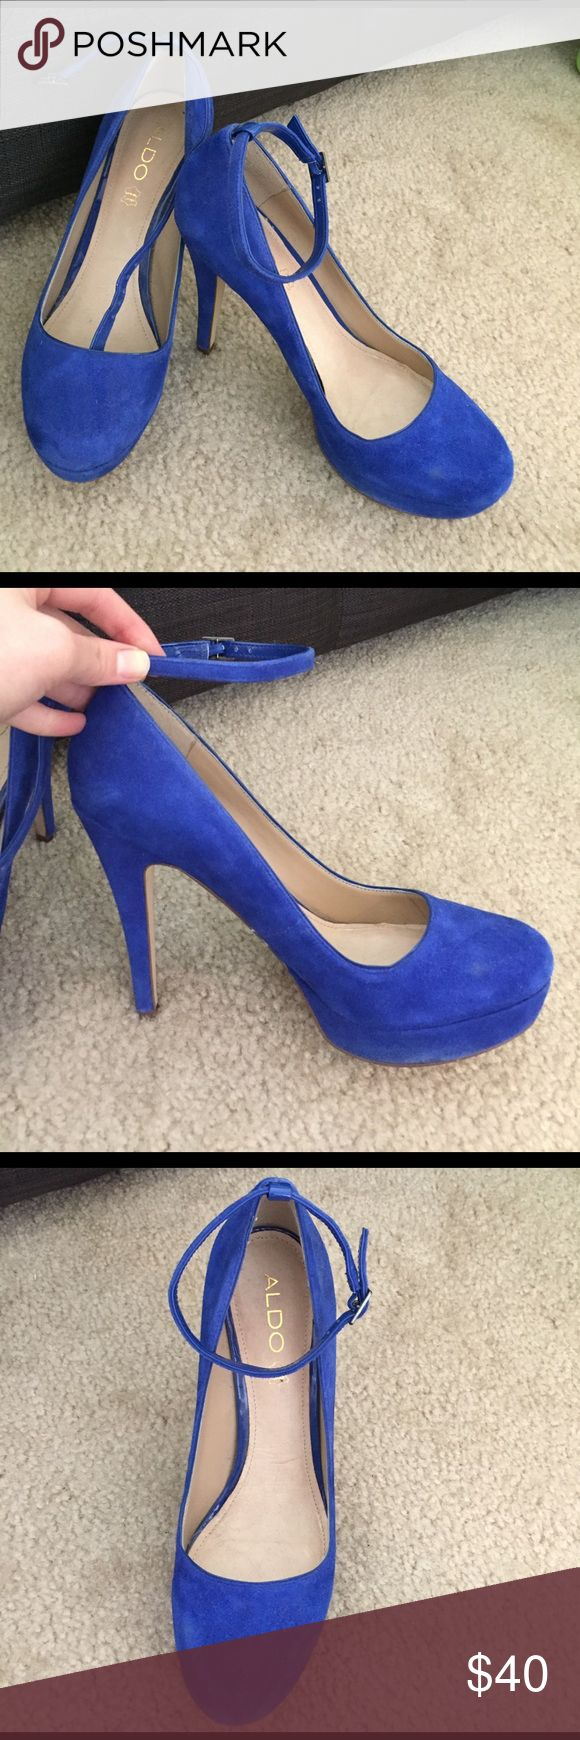 Royal Blue suede Aldo pumps Size Euro 40, but fit like US size 9. Royal blue suede. Worn once for NYE party! Aldo Shoes Heels